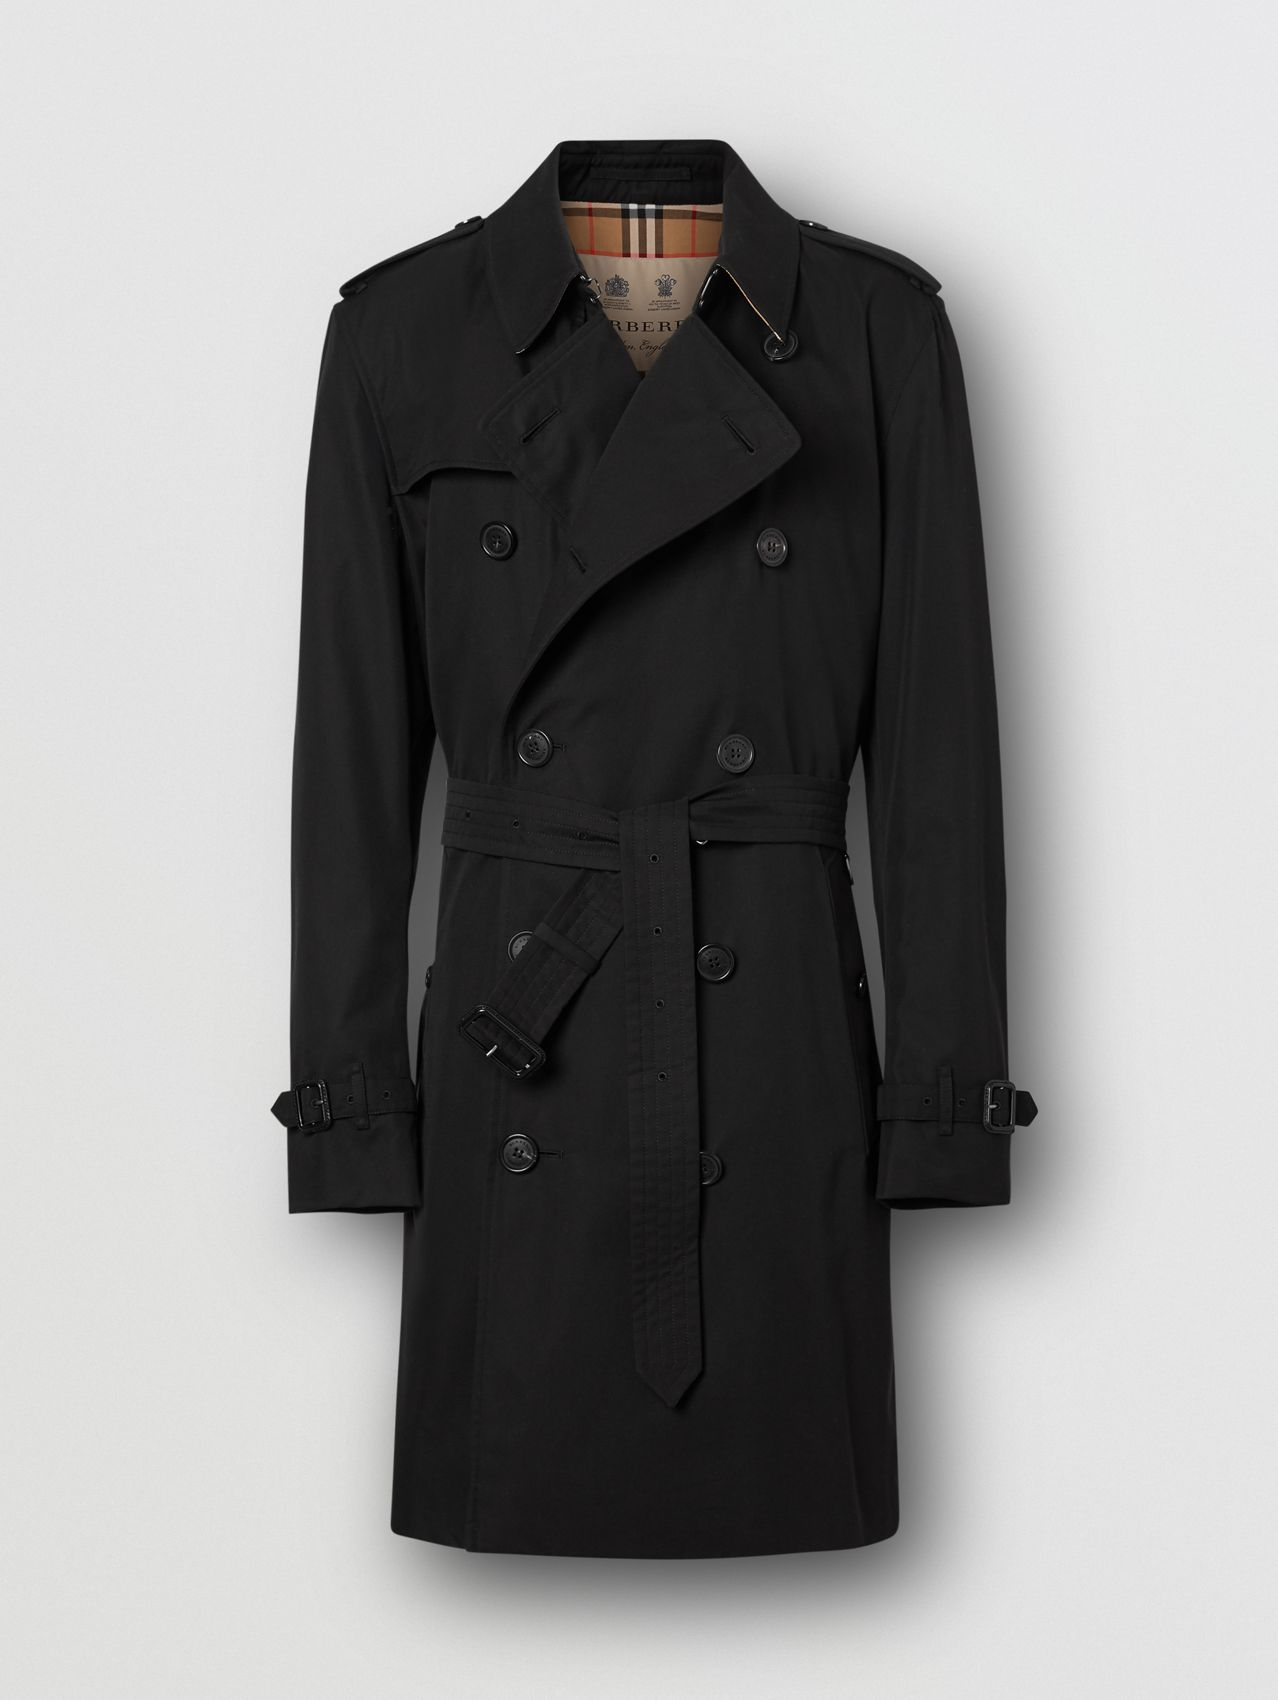 The Mid-length Kensington Heritage Trench Coat (Black)